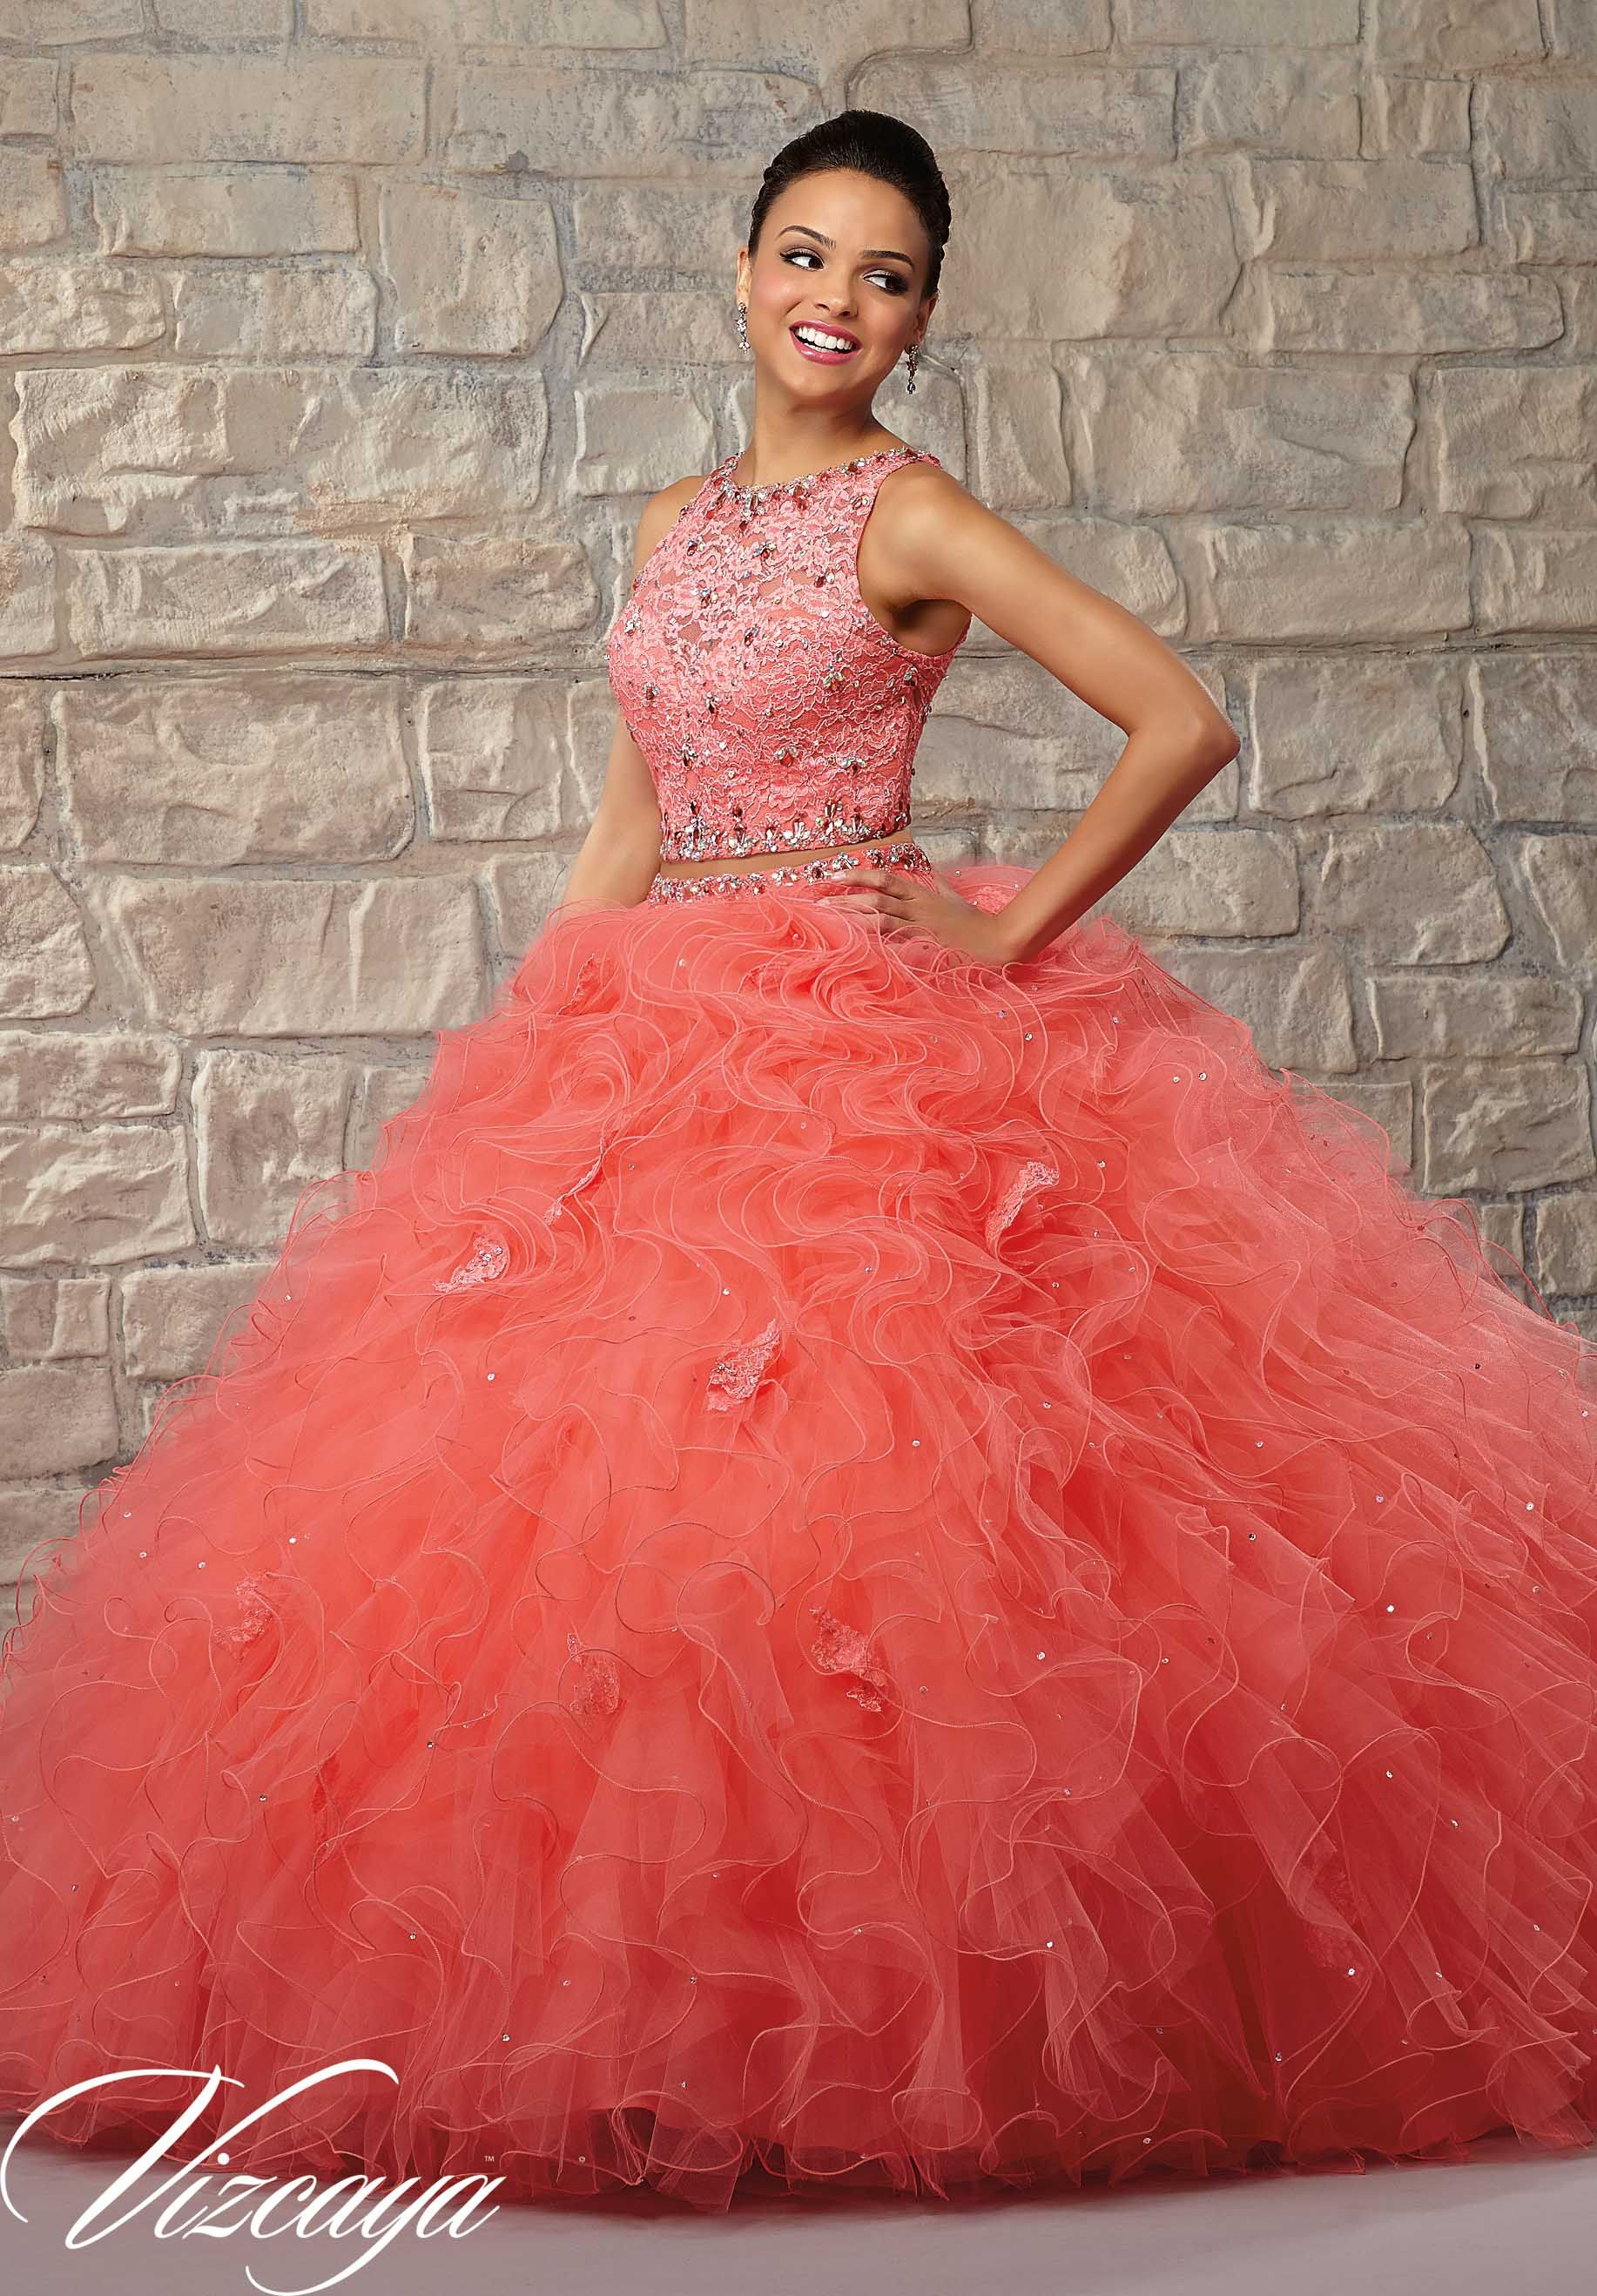 4b0c4e24a8c Quinceanera dresses by Vizcaya Two-Piece Ruffled Tulle Skirt with Lace  Bodice and Beading. Matching Stole. Available in Coral